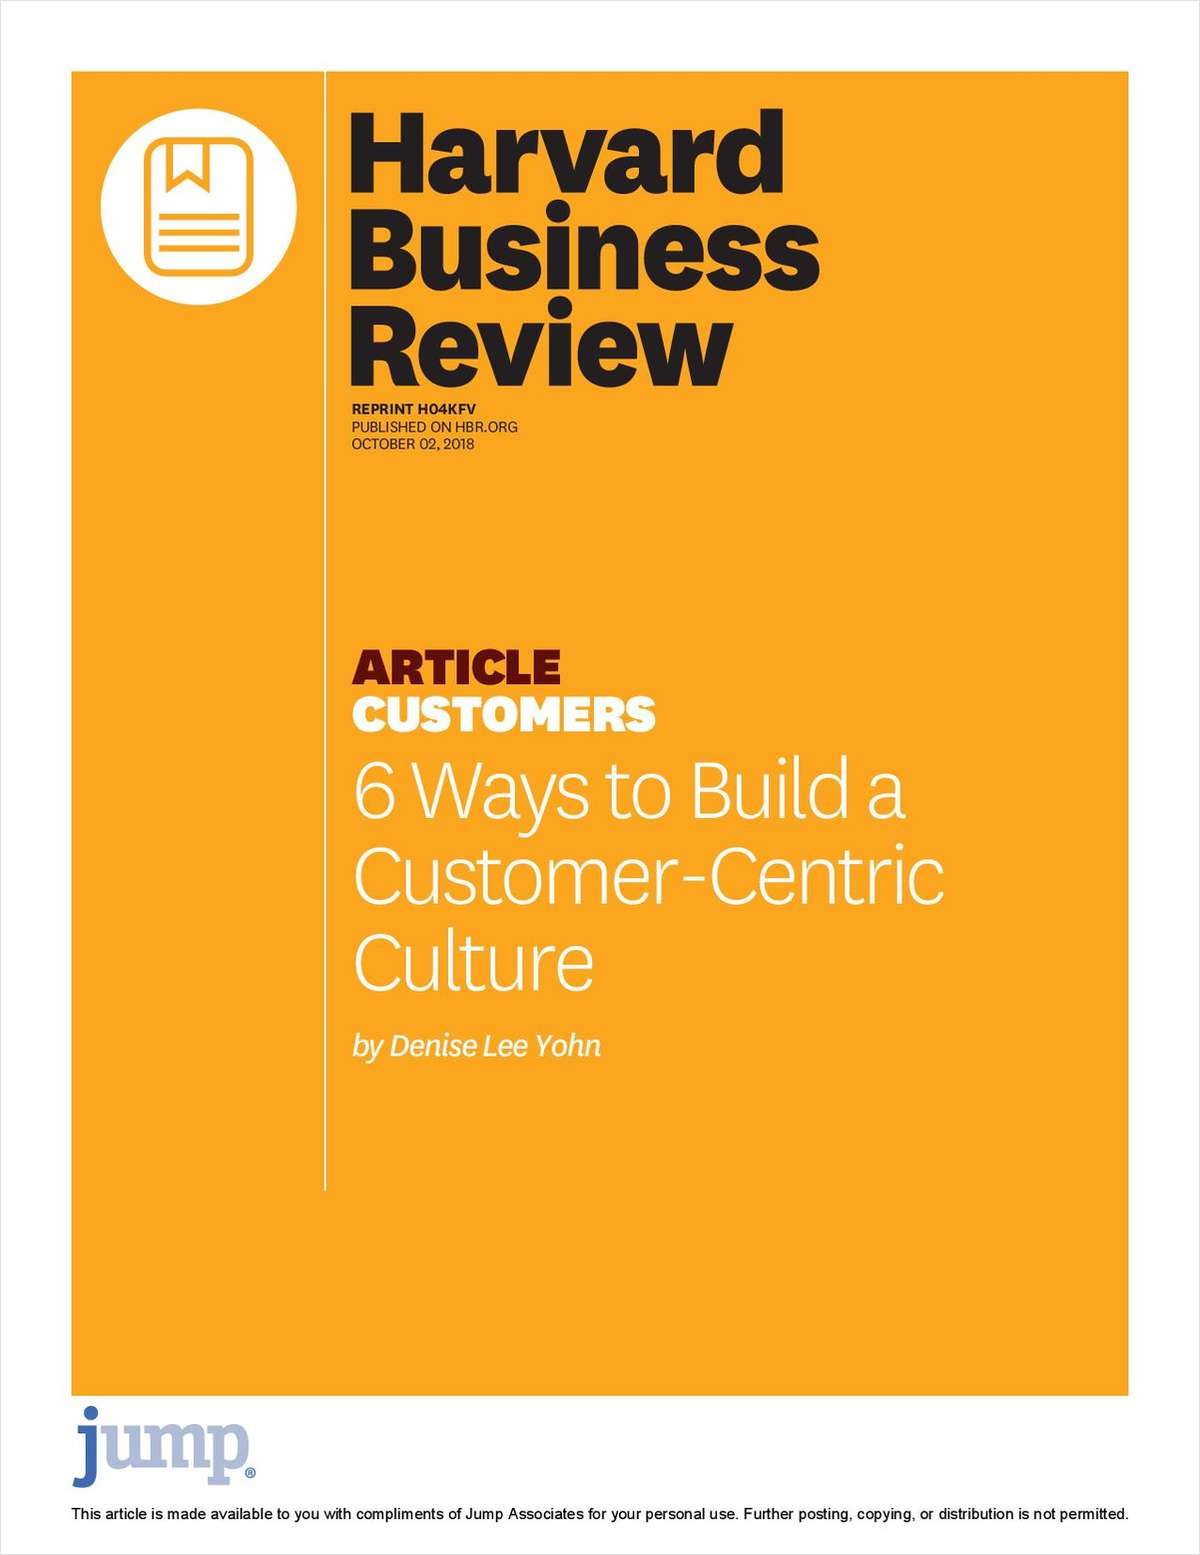 6 Ways to Build a Customer-Centric Culture